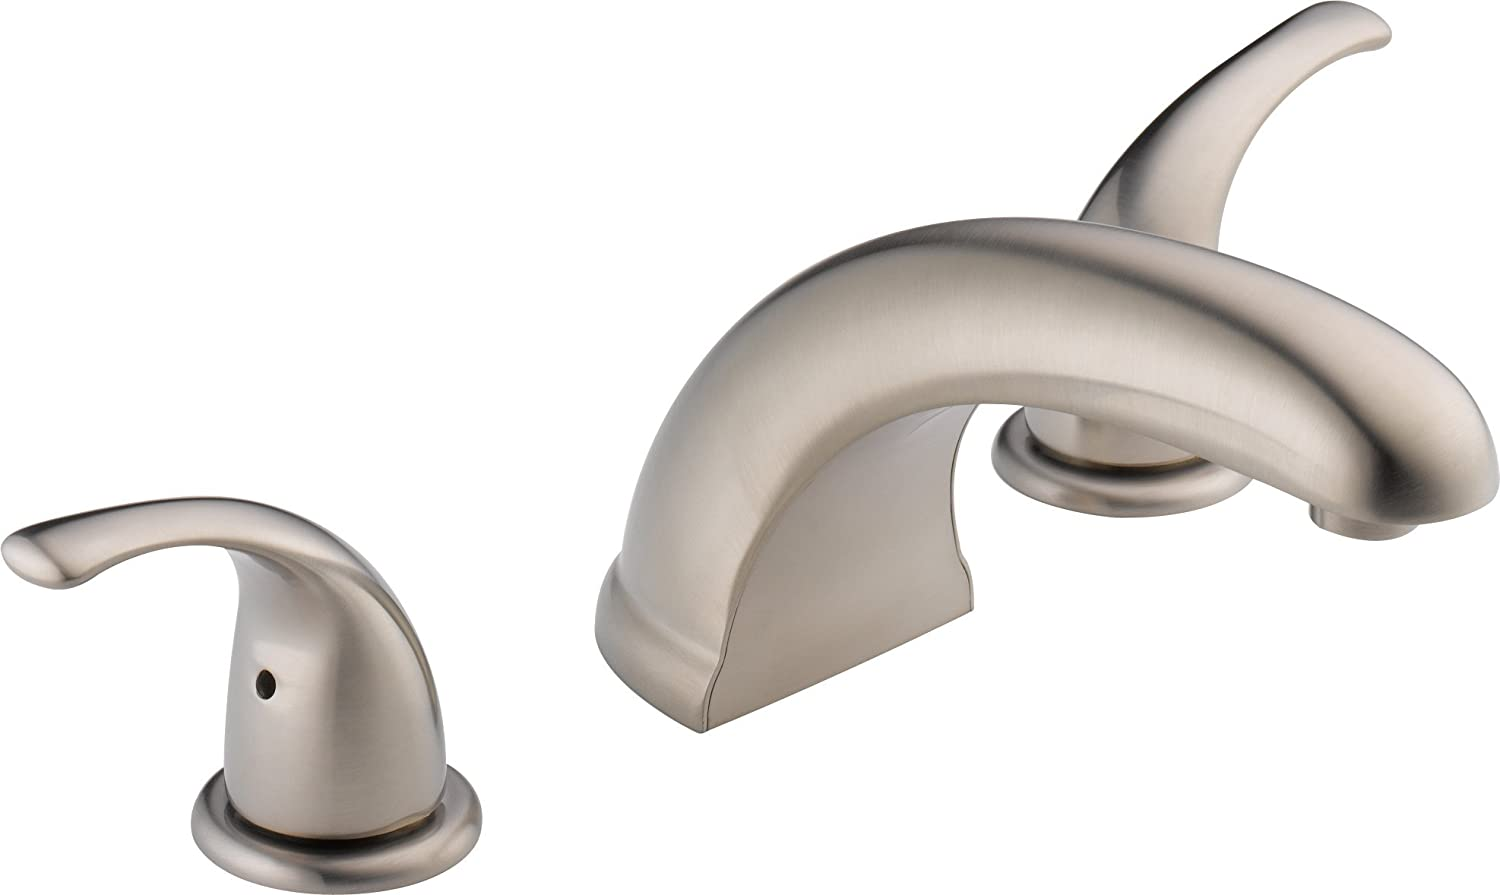 Peerless Tunbridge 2-Handle Widespread Roman Tub Faucet Trim Kit, Brushed Nickel PTT298510-BN (Valve Not Included)